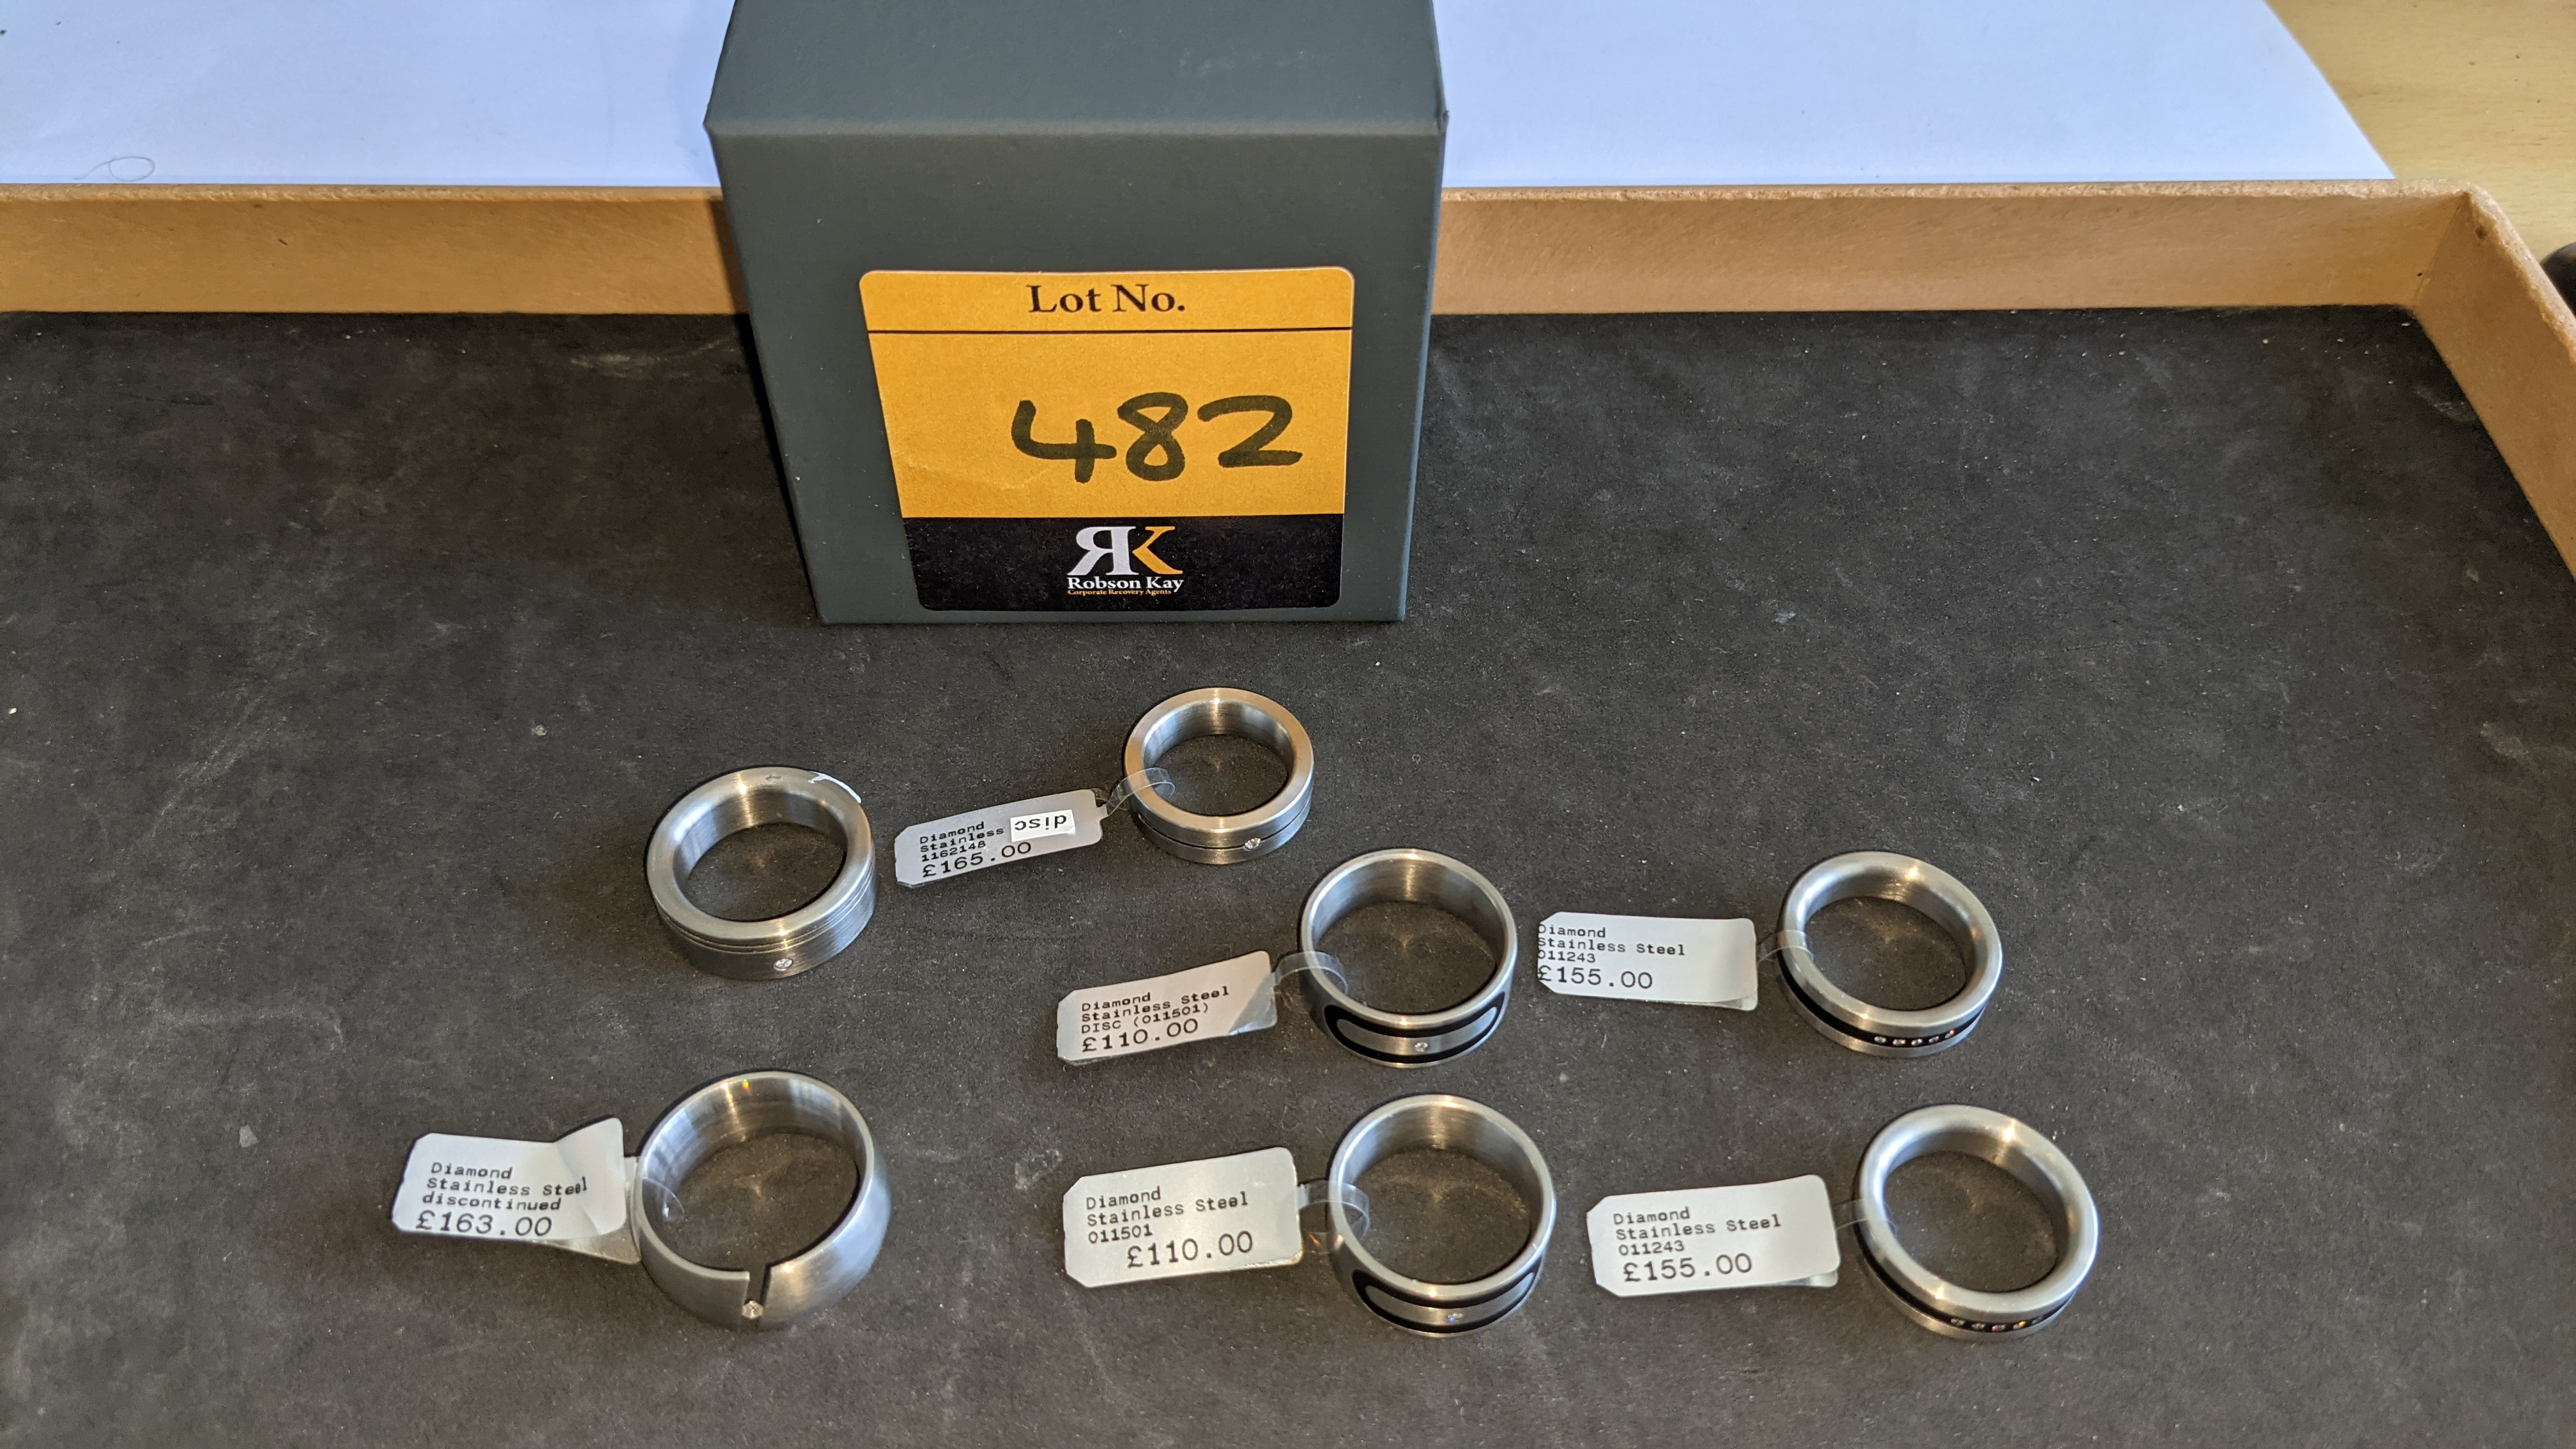 7 off assorted stainless steel & diamond rings. RRPs from £110 - £170. Total RRP £1,028 - Image 3 of 12